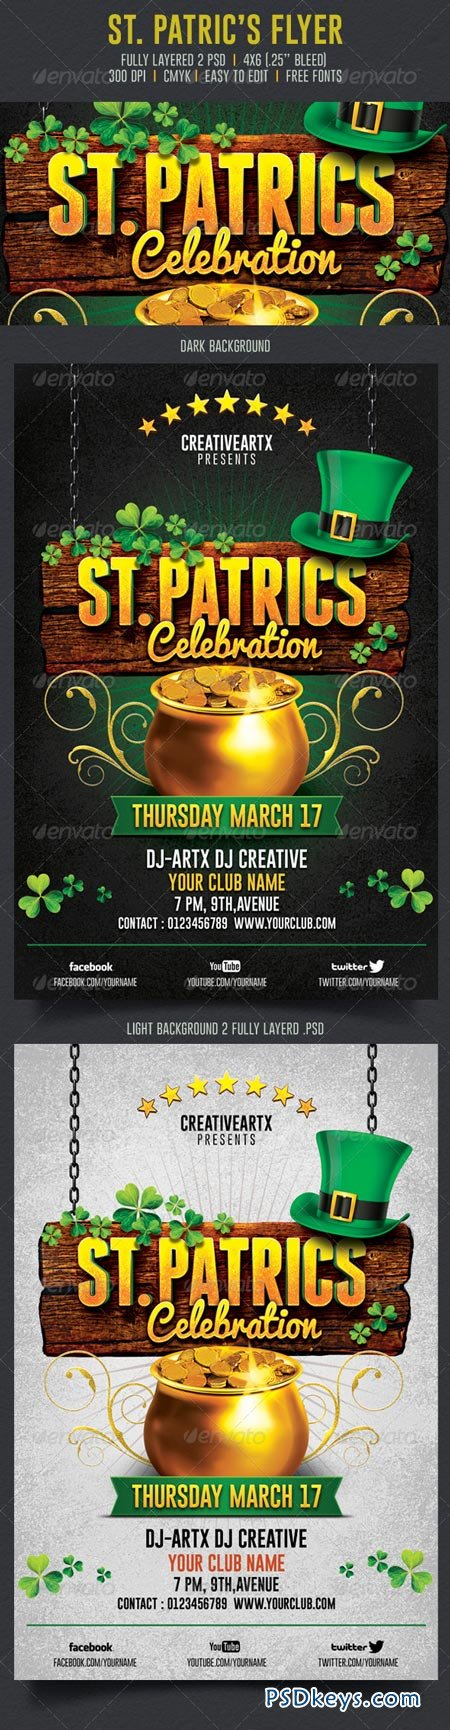 St. Patrick's Celebration Flyer 6904898